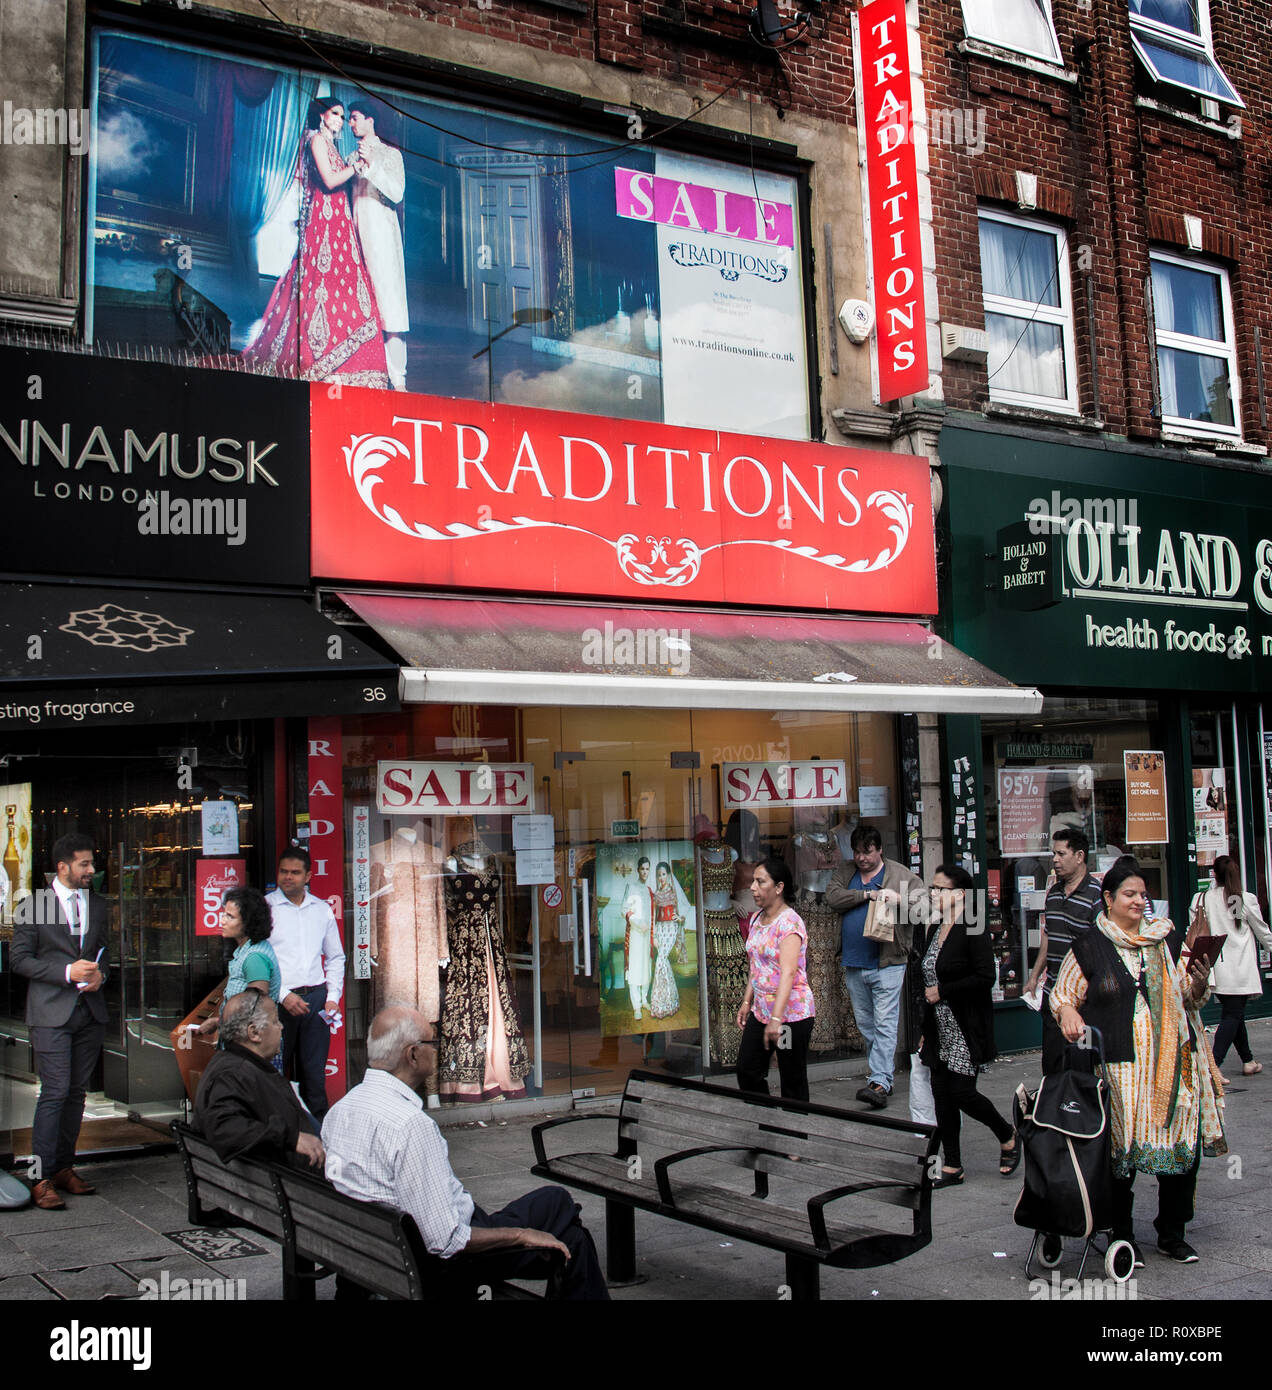 street scene outside Traditions clothes shop,southall broadway London - Stock Image